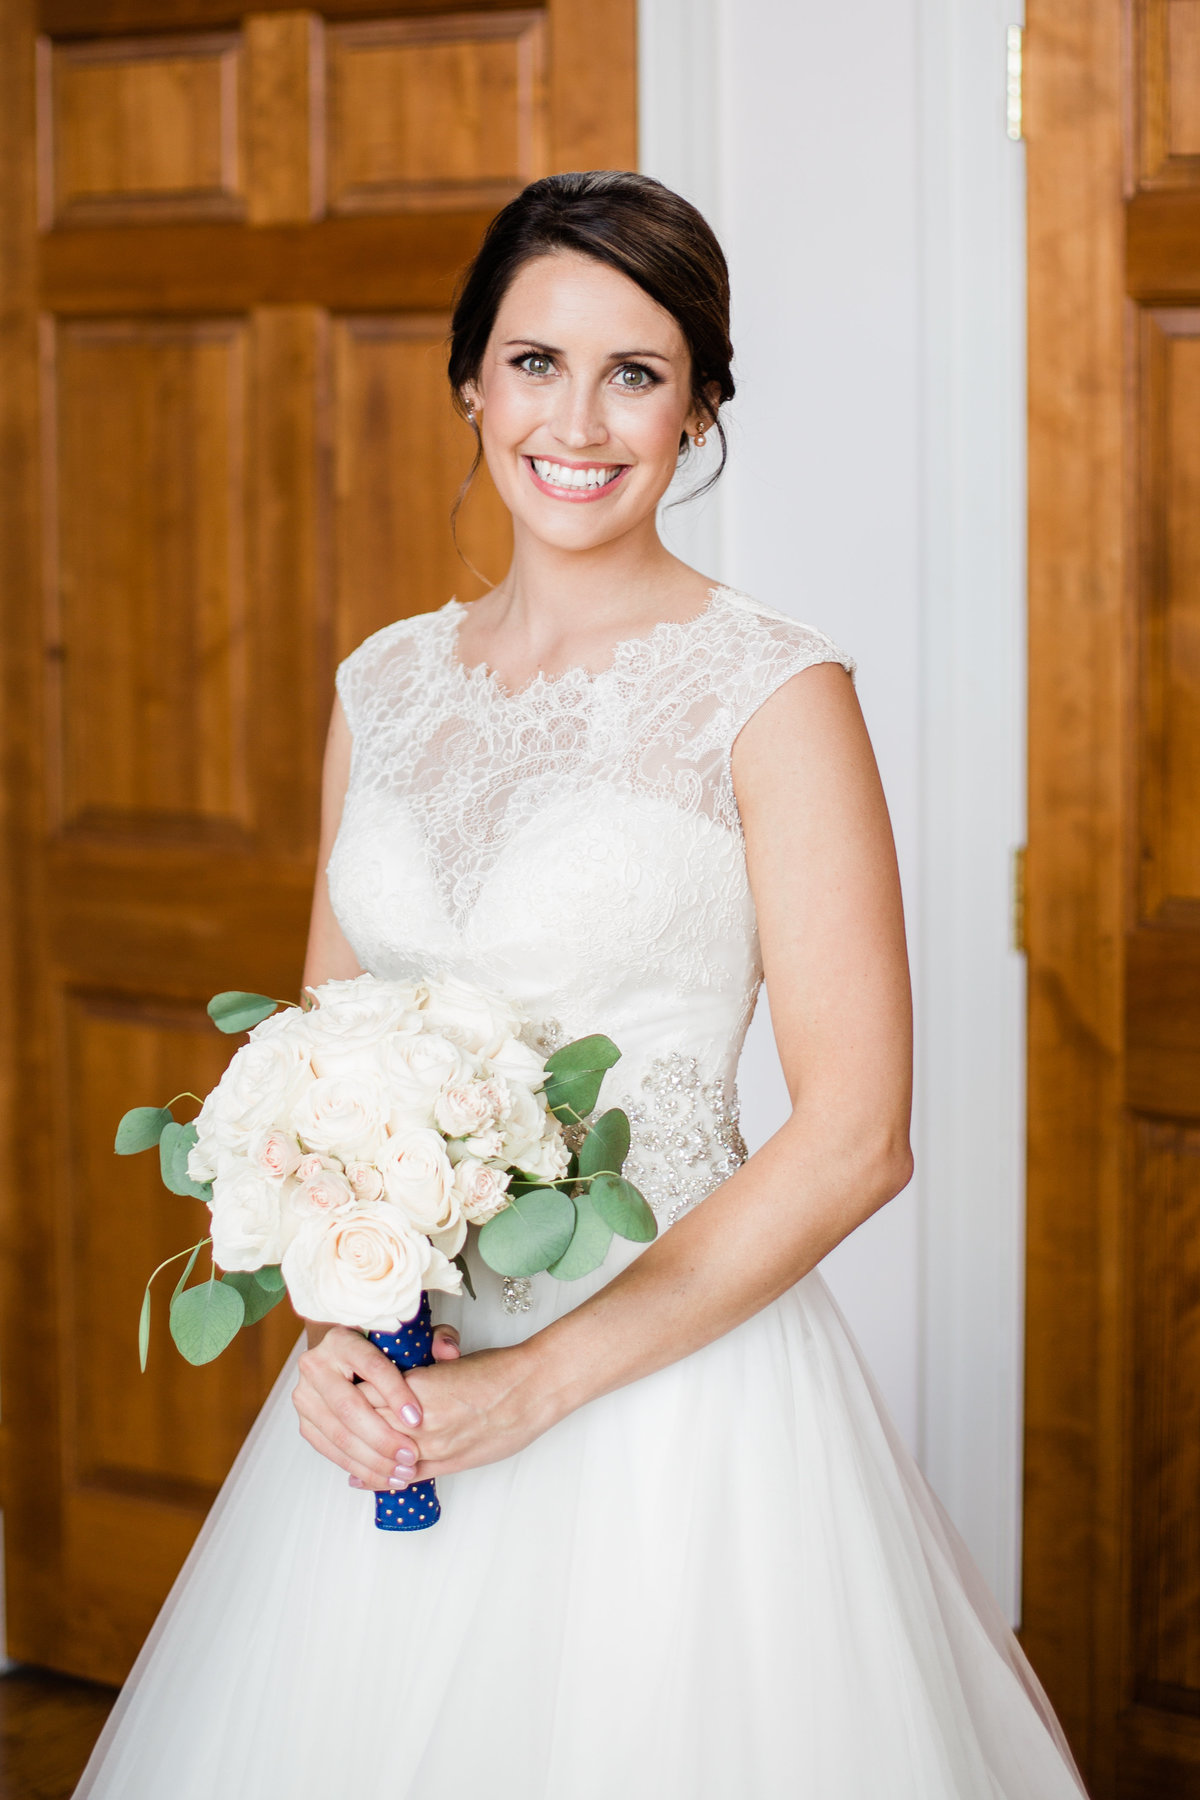 Danielle-Defayette-Photography-Revolution-Mill-Events-Wedding-Greensboro-NC-12